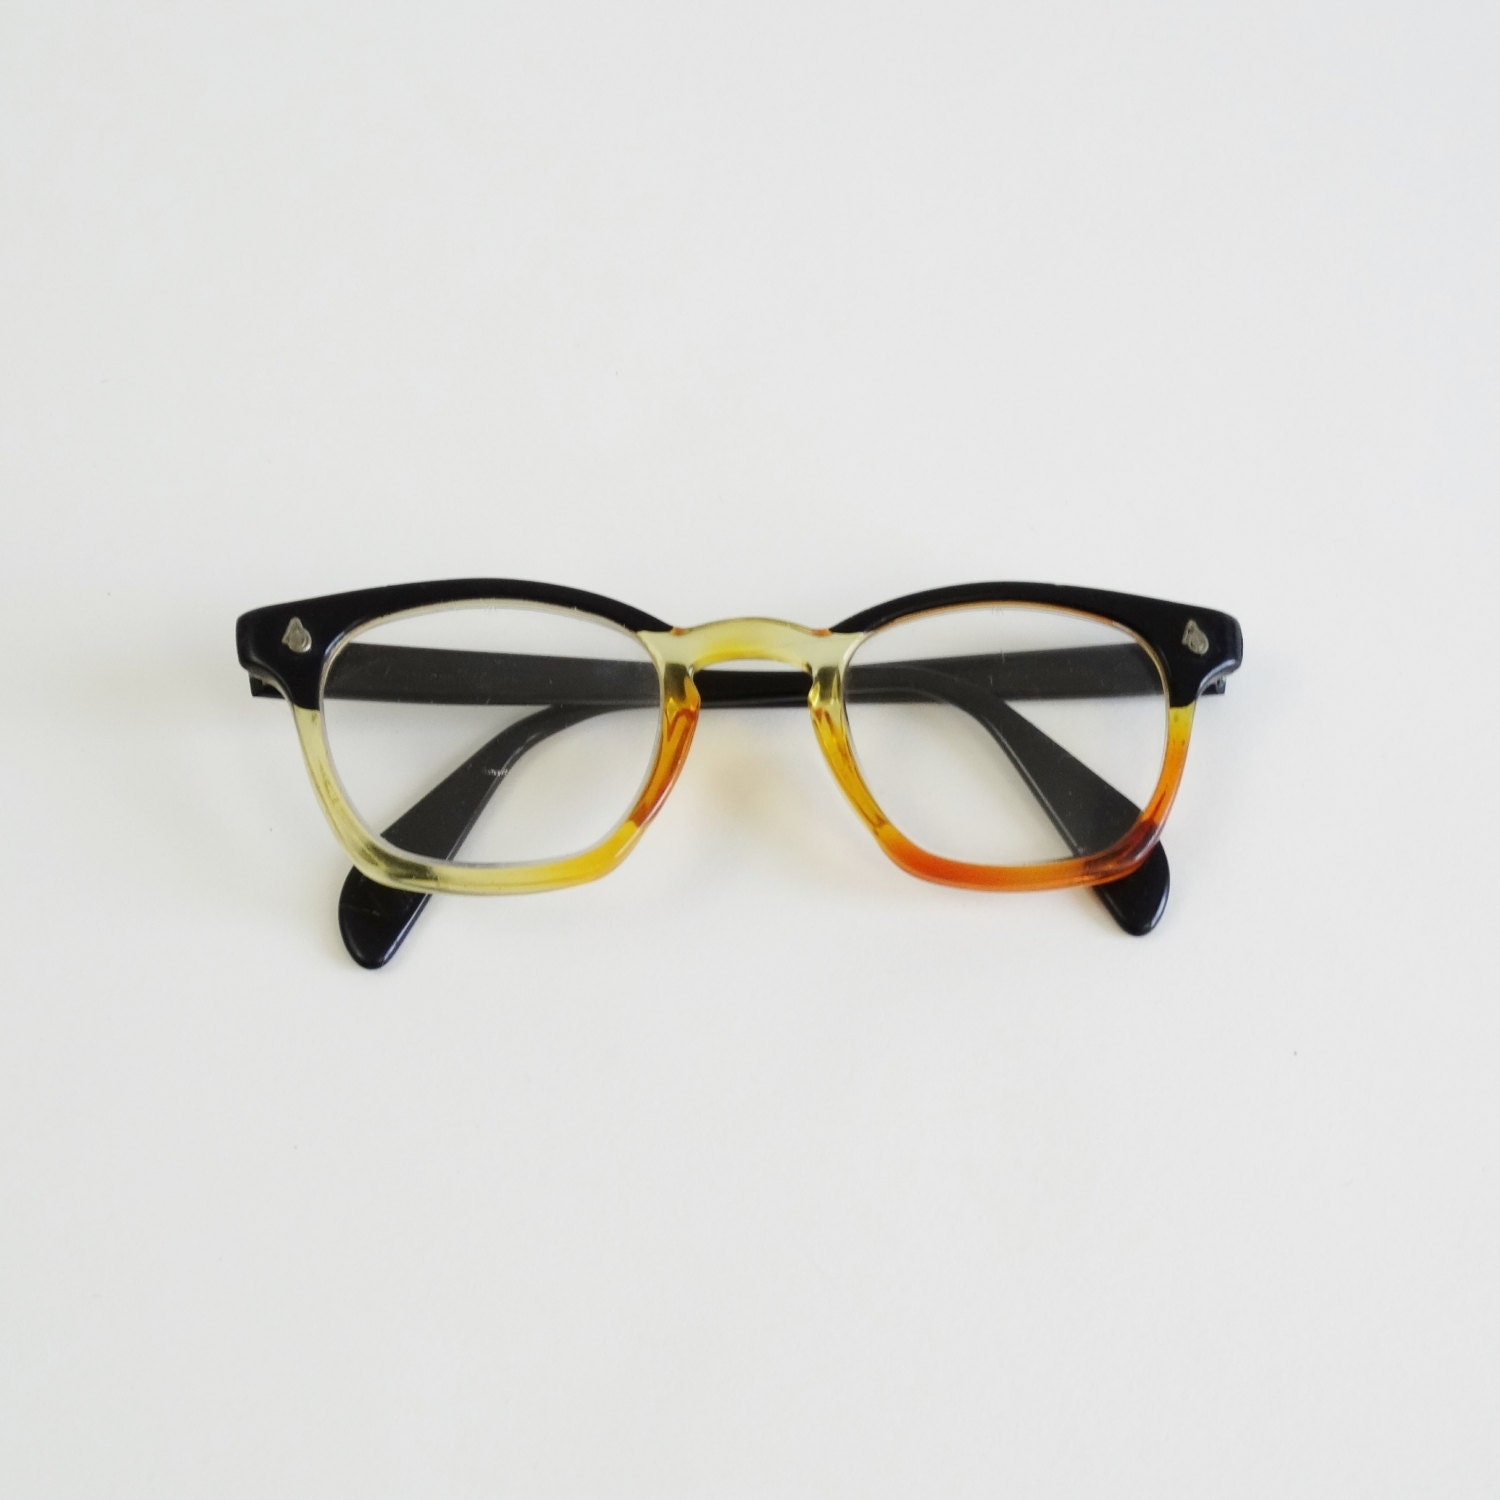 Good Eyeglass Frames For Thick Lenses : 60s plastic glasses frames vintage 1960s thick eyeglasses